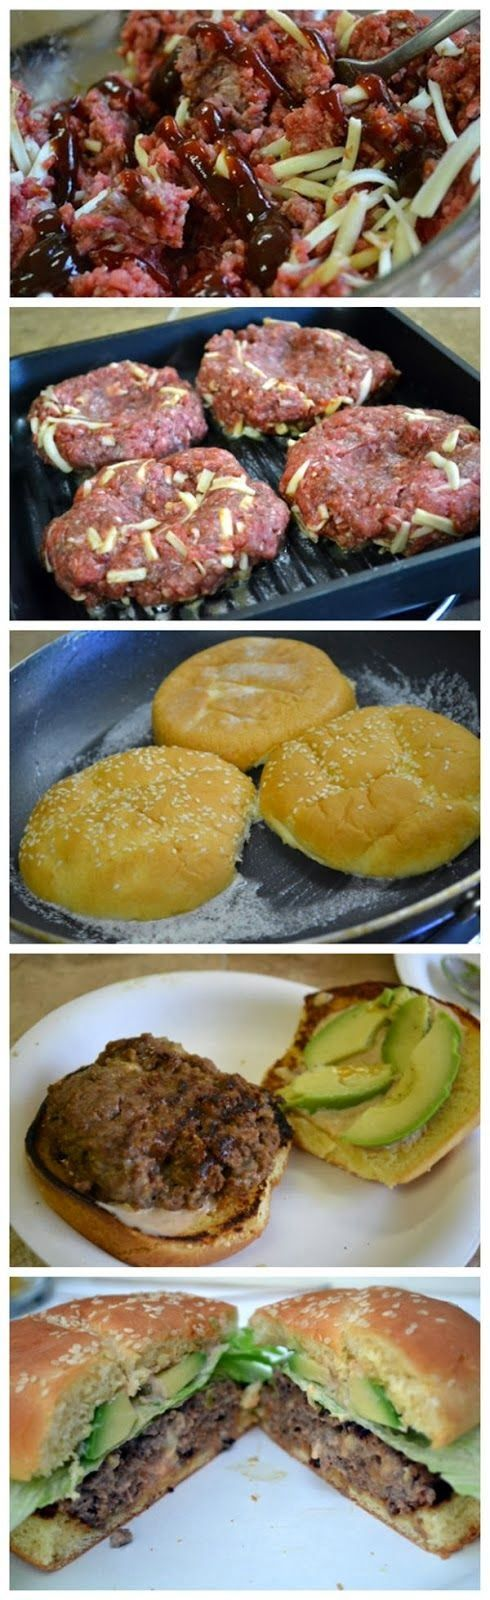 7 Best Images About Burger Recipes On Pinterest  Bumble